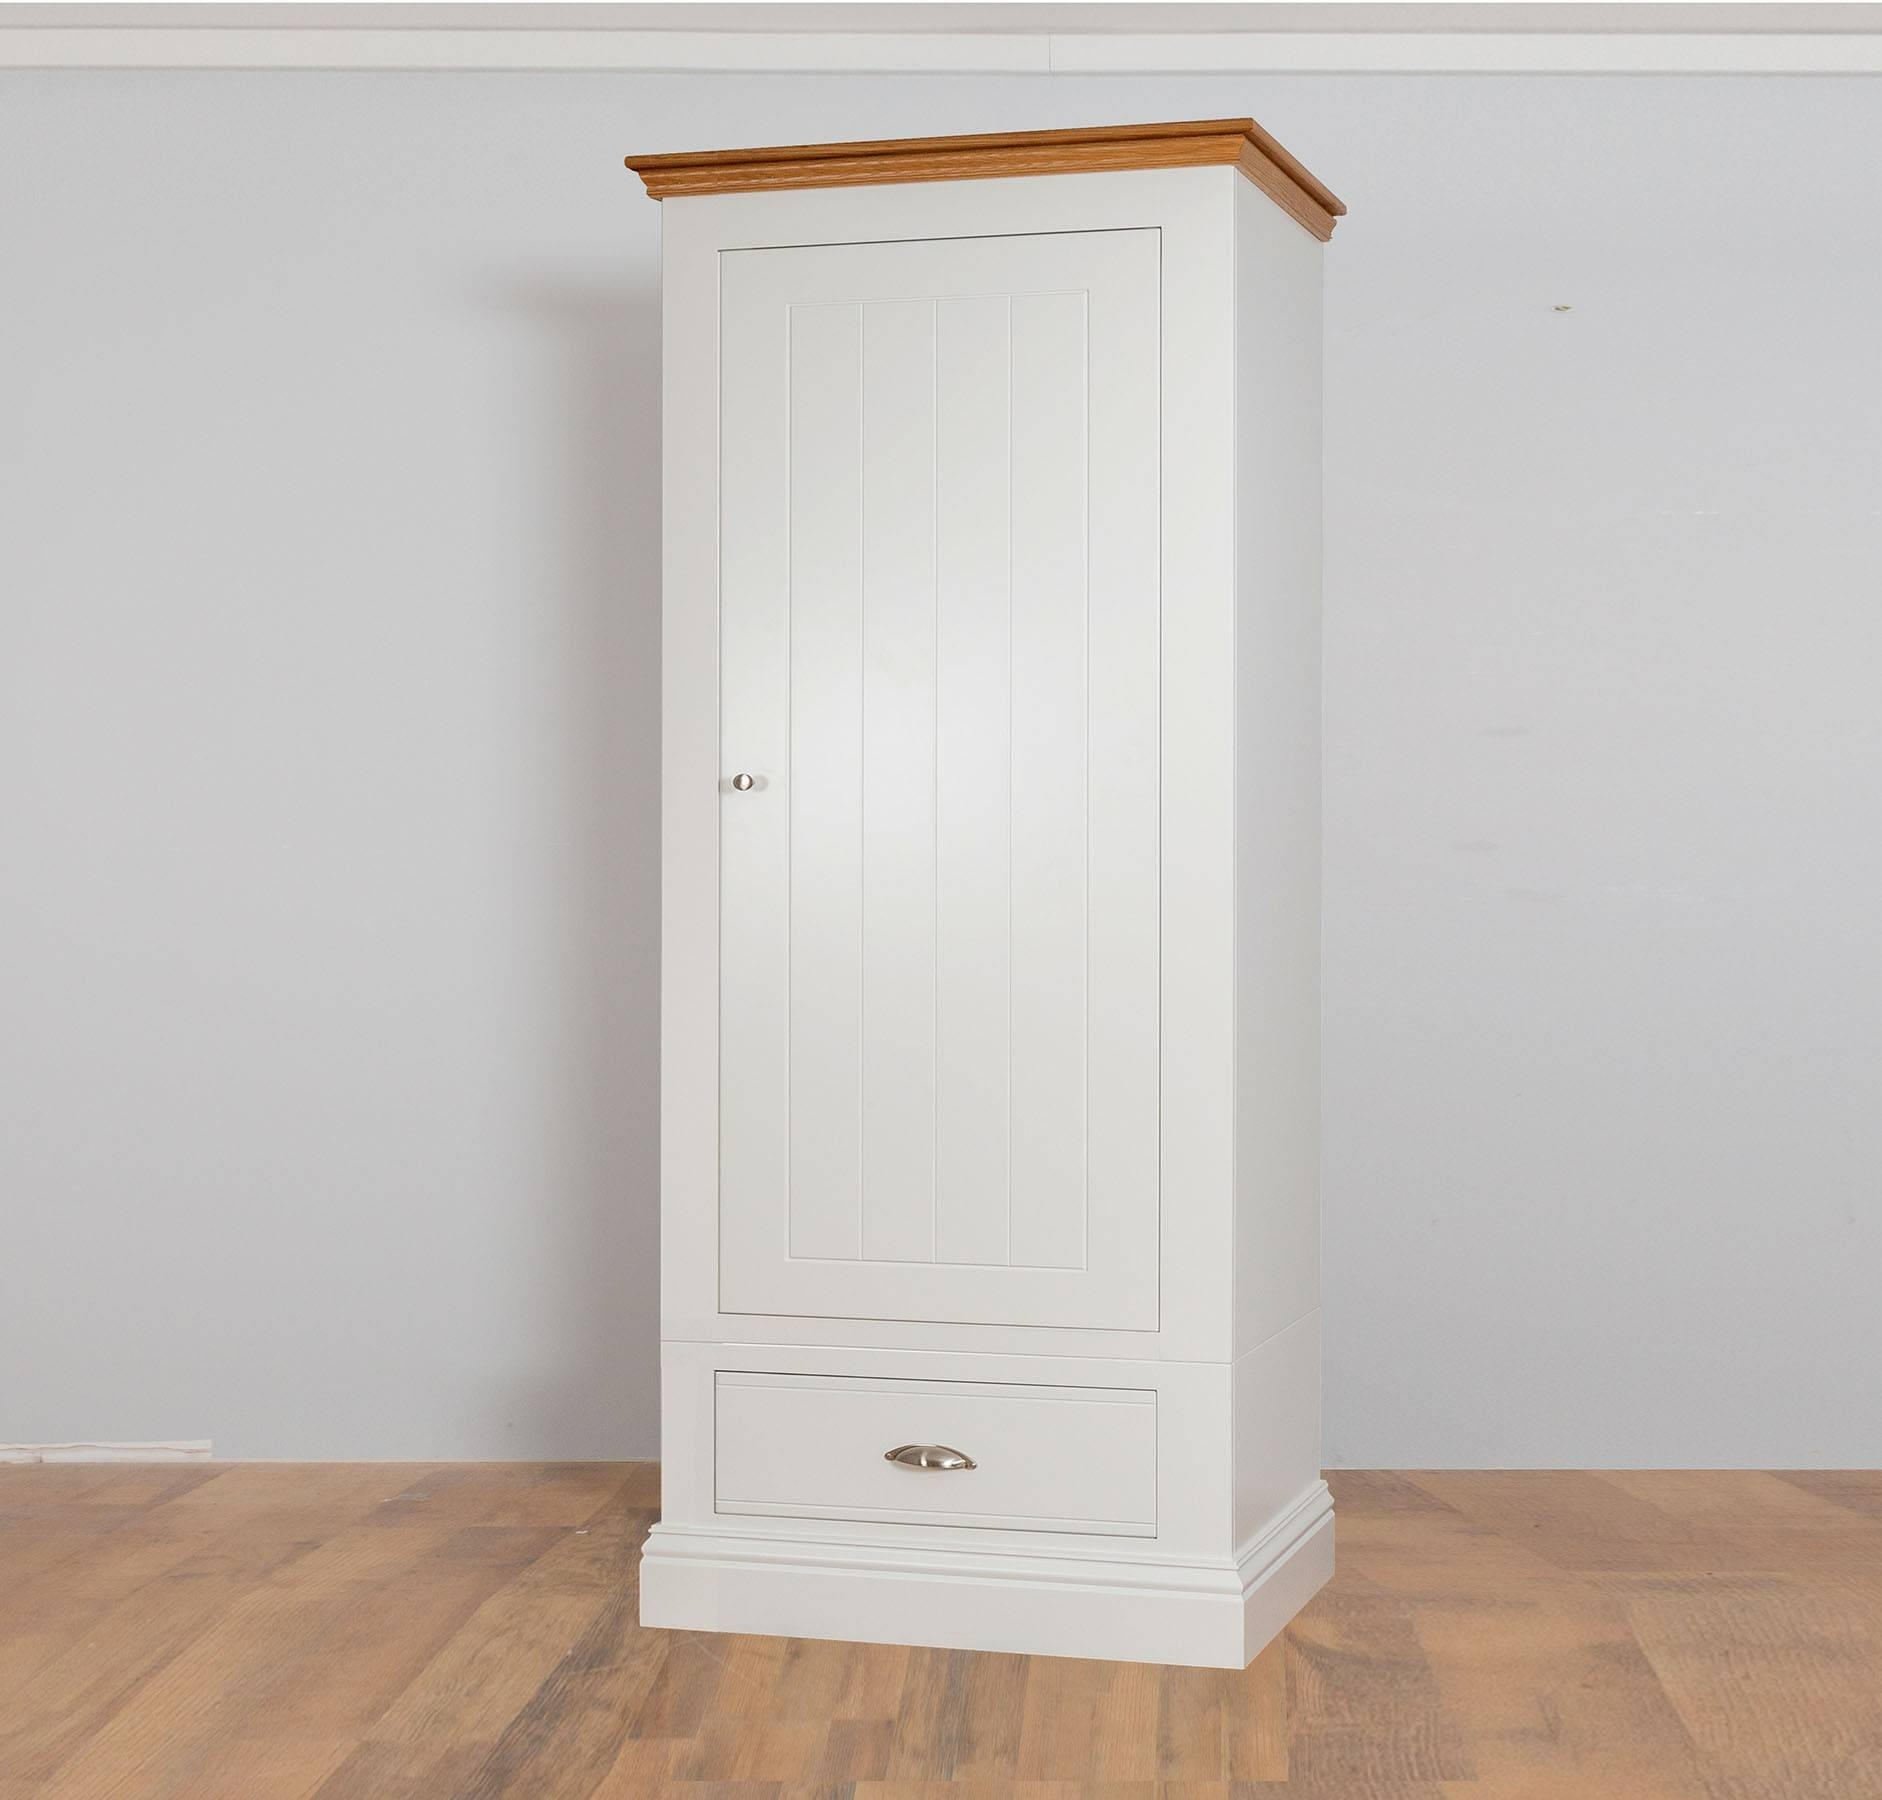 New England Painted 1 Door 1 Drawer Wardrobe In 2 Heights intended for Painted Wardrobes (Image 7 of 15)